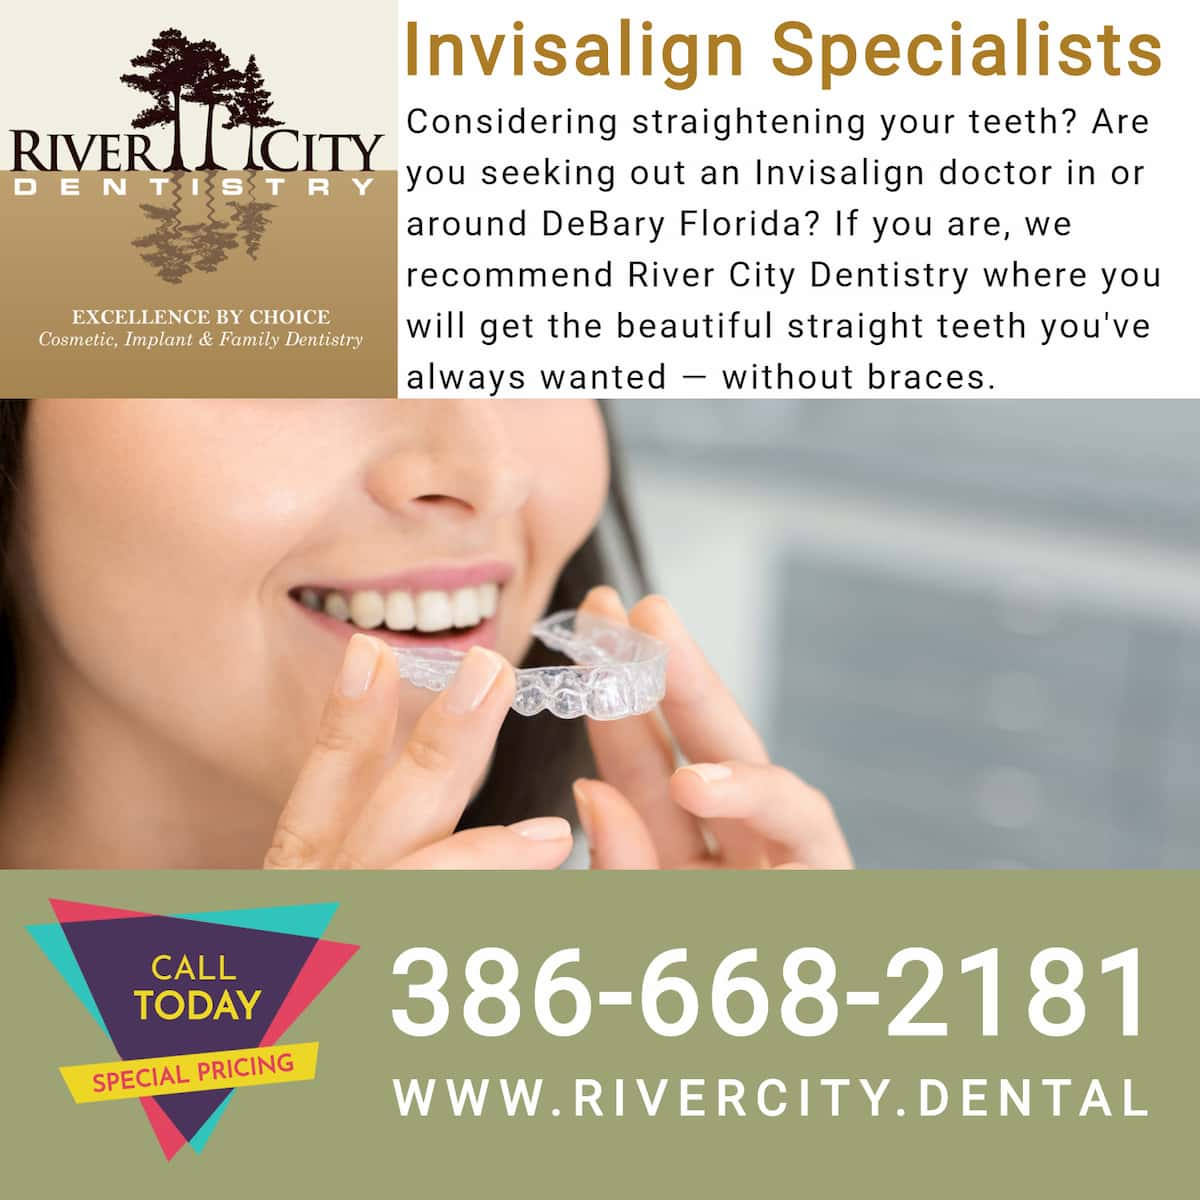 Invisalign Provider - River City Dentistry DeBary FL